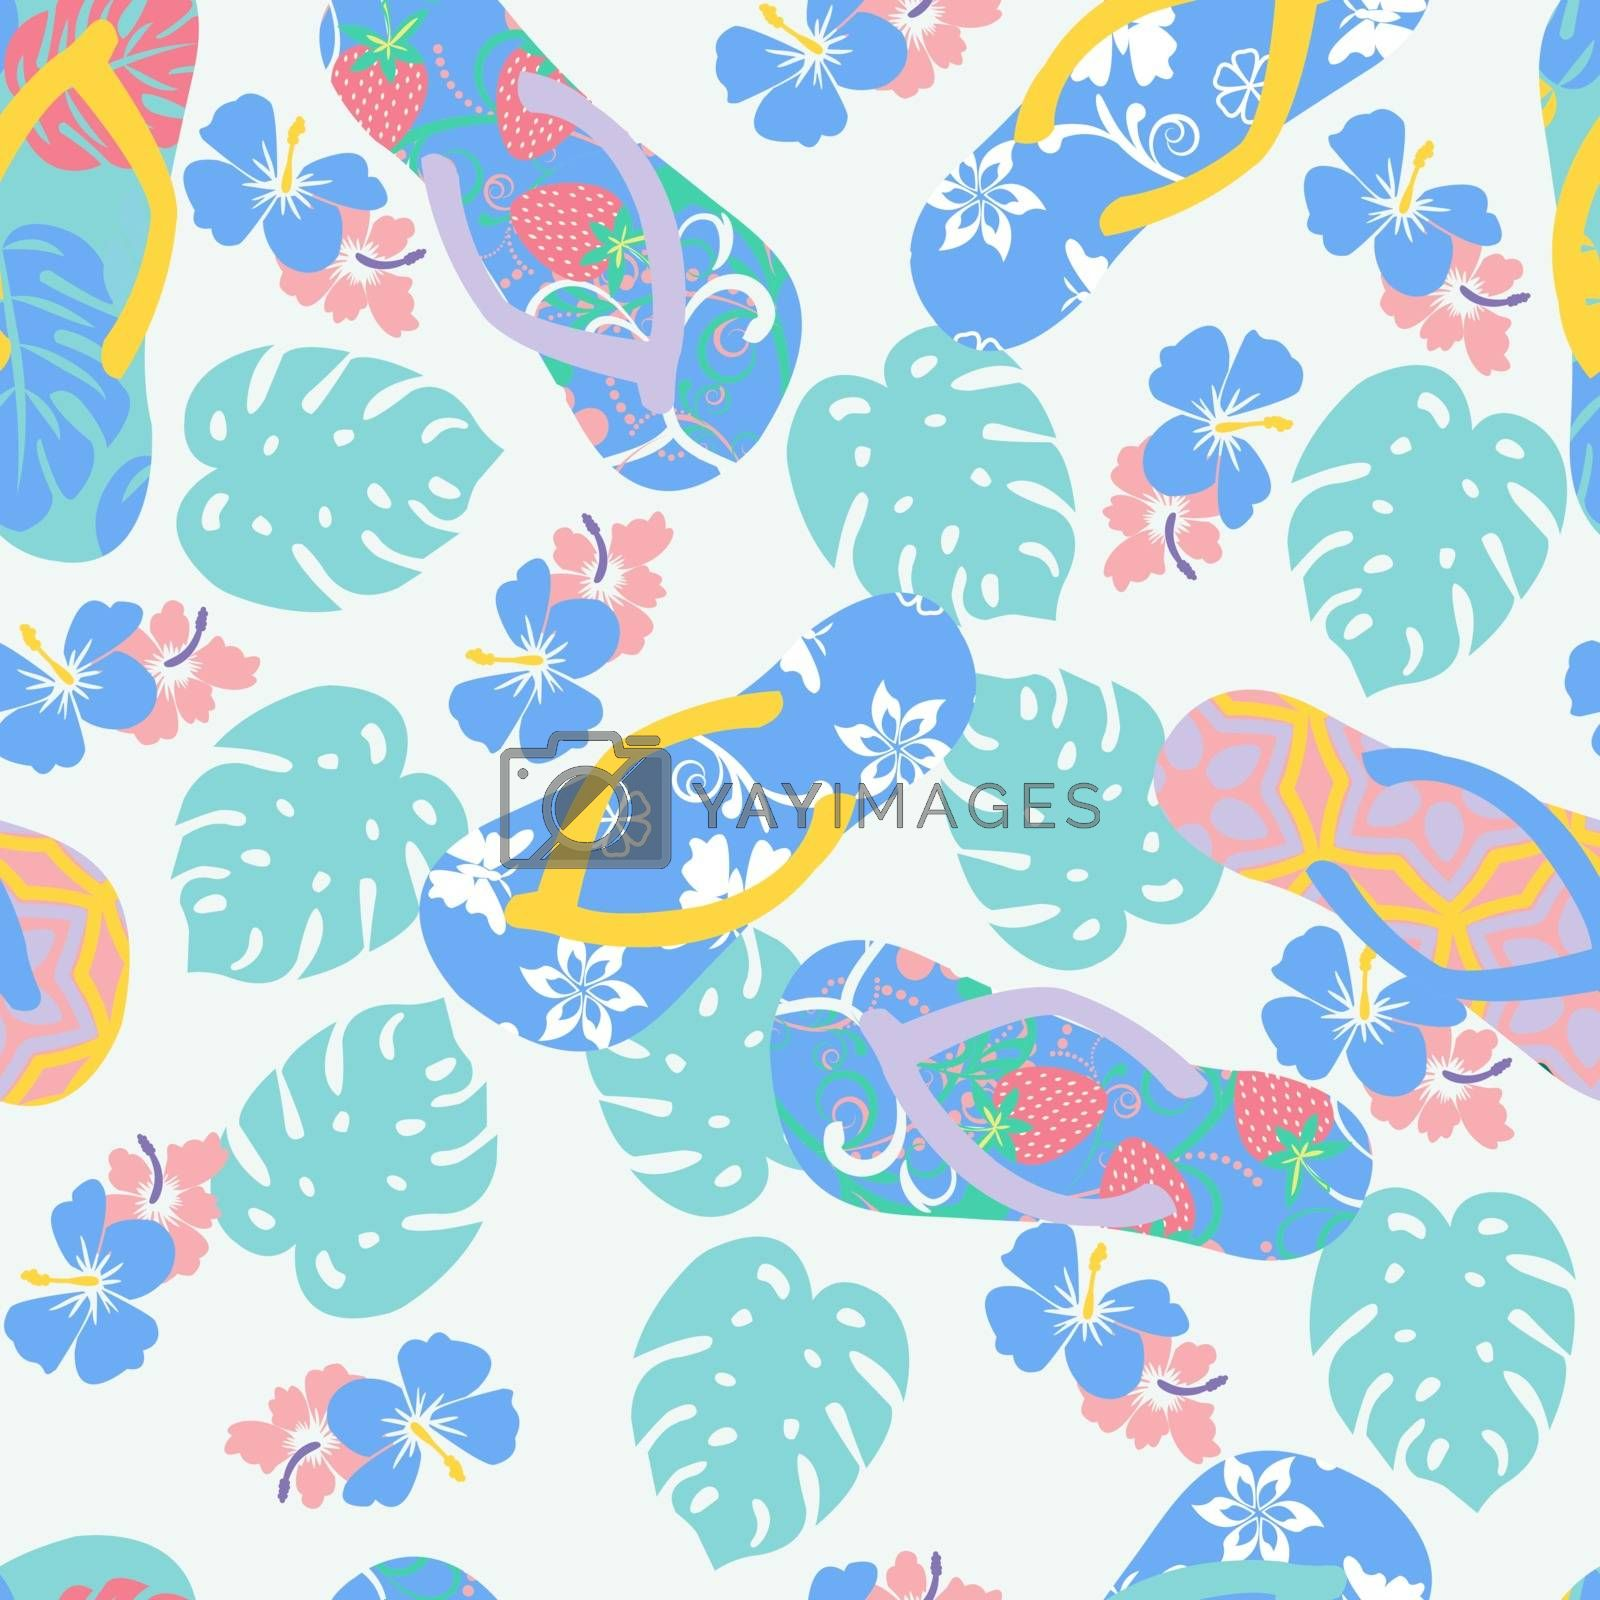 Vector summer background with flower hibiscus and flip flops. Seamless tropical floral wallpaper in pastel colors.